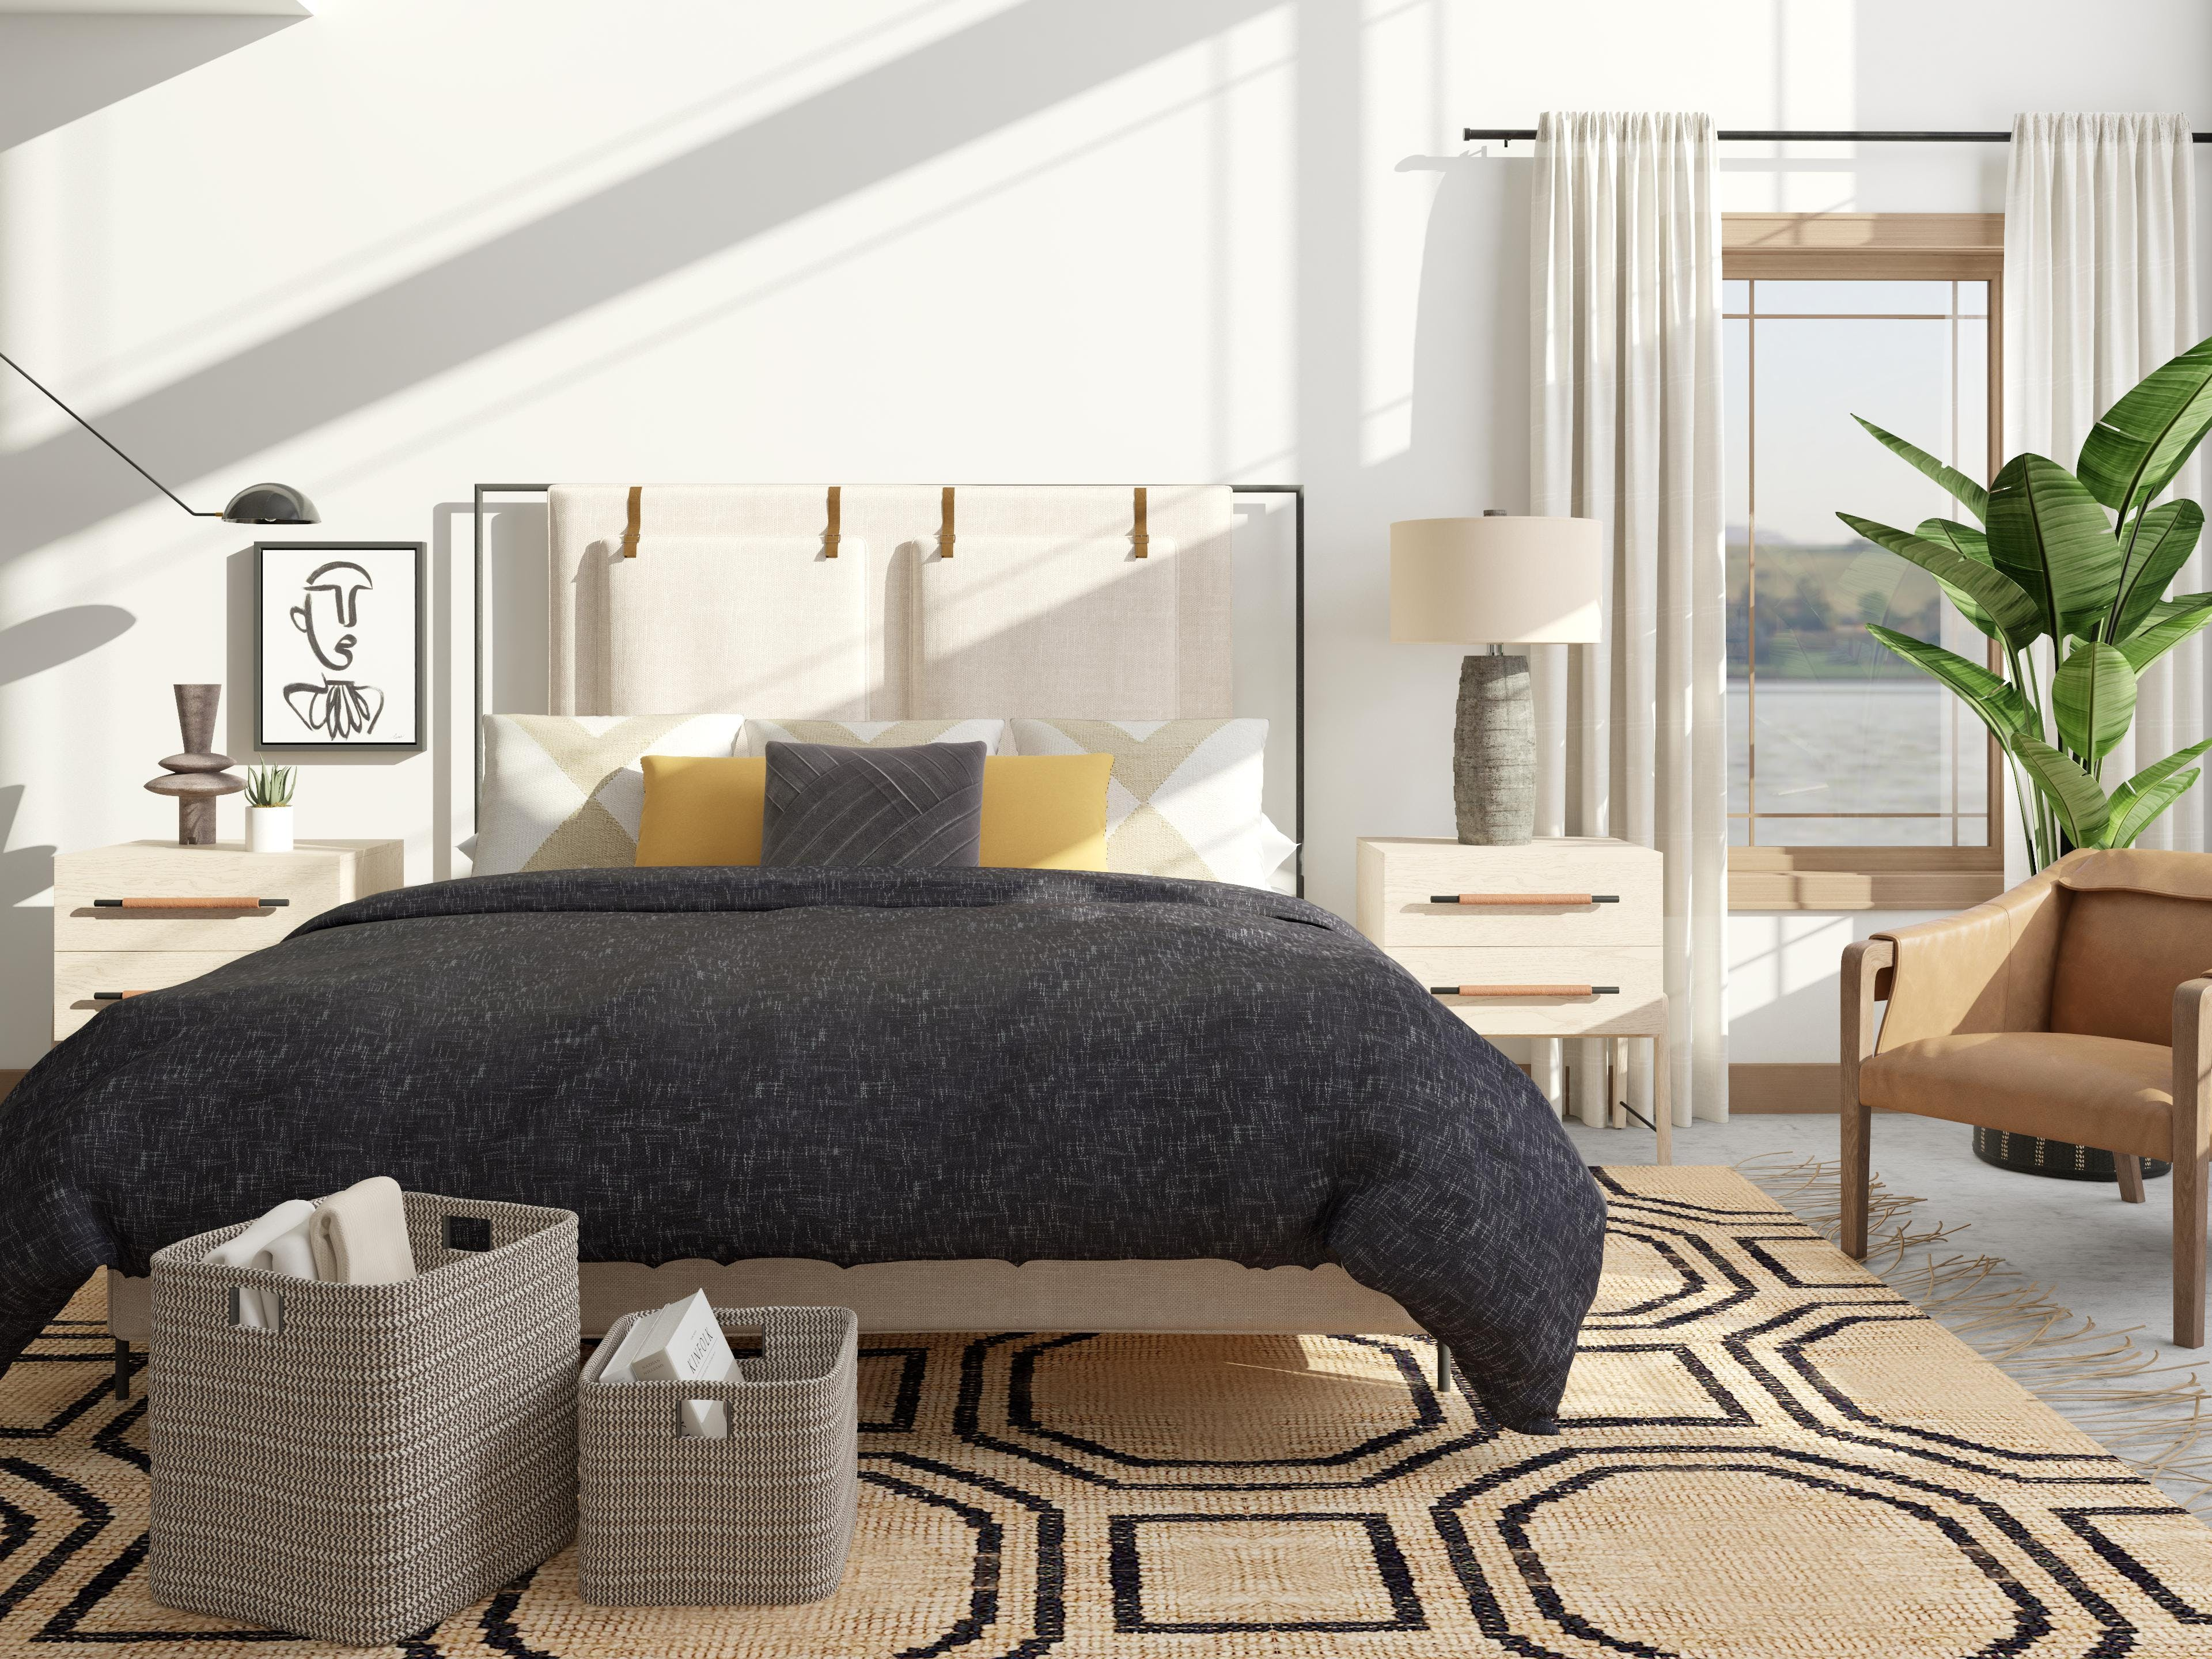 Bold Geometric Pattern Play in this Dreamy Bedroom